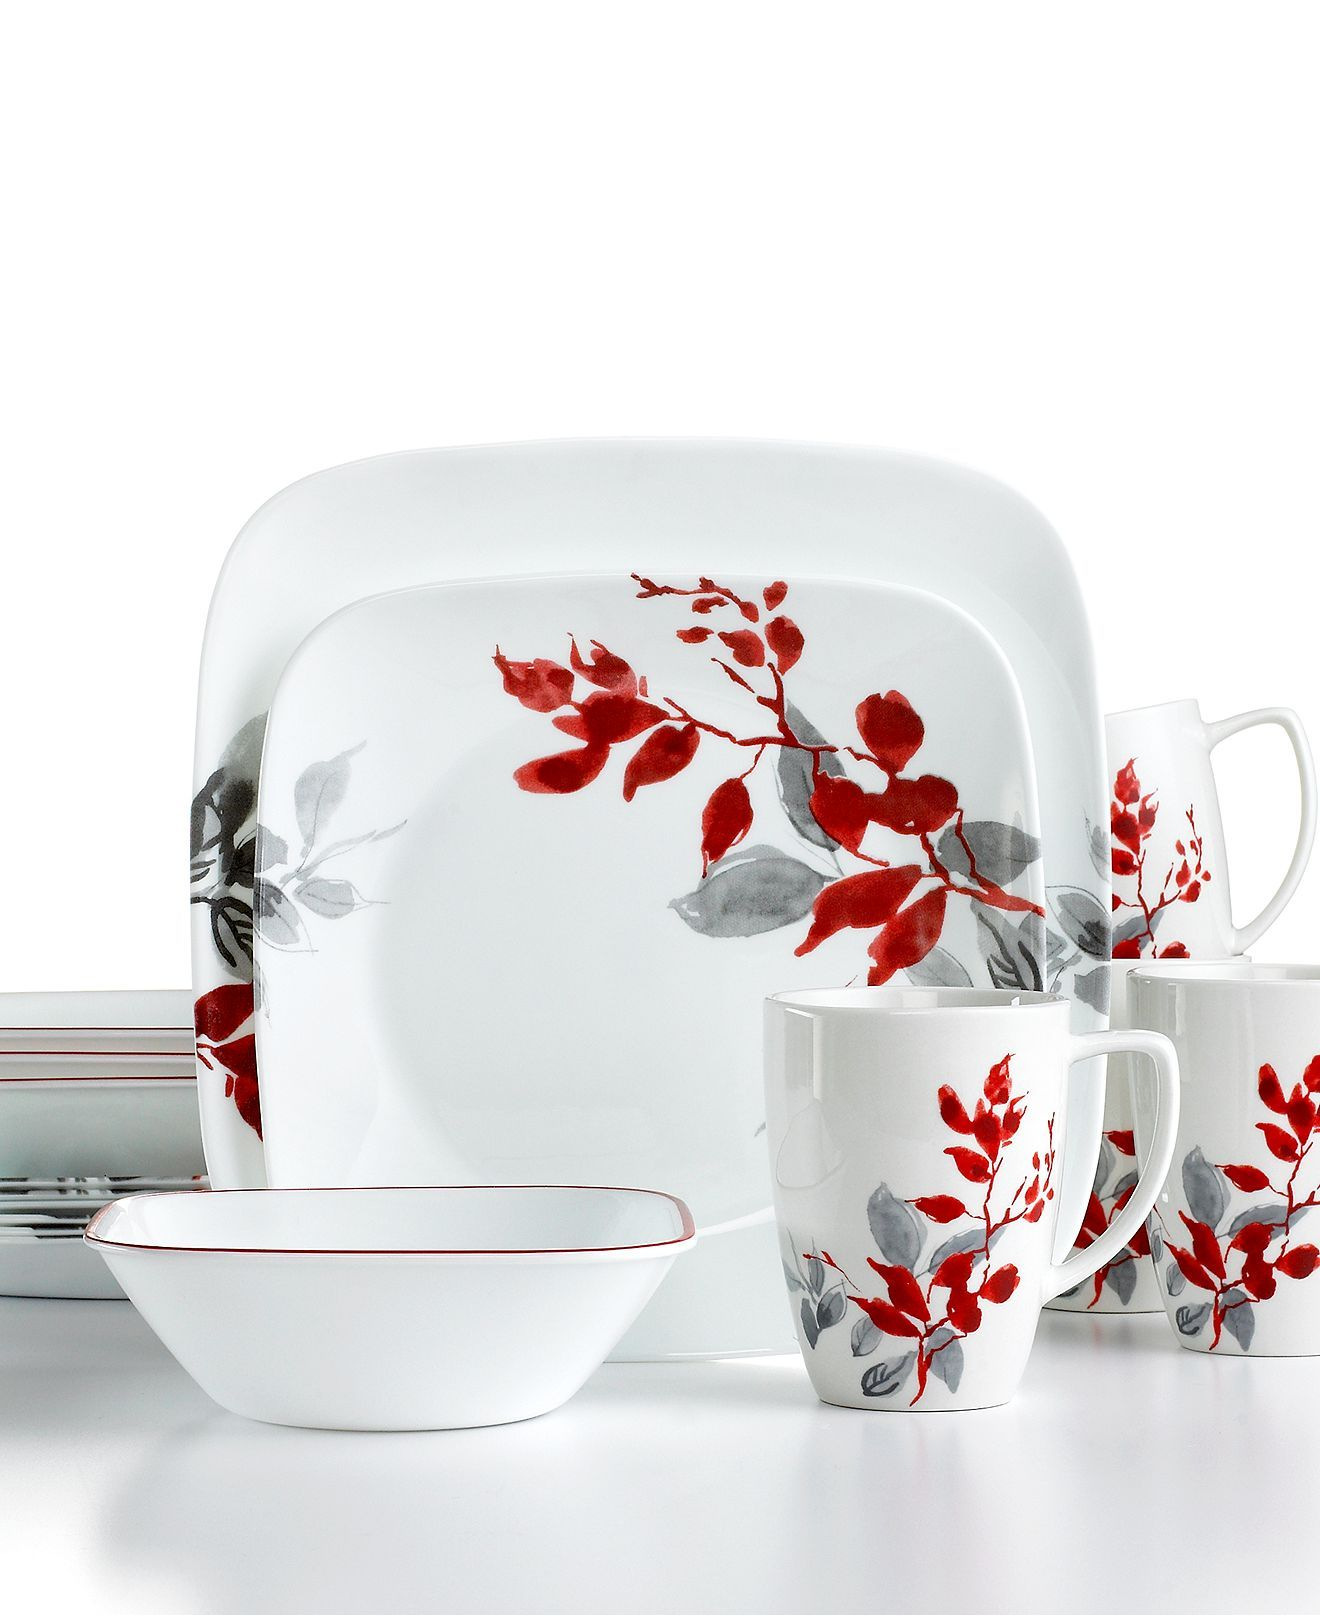 Corelle Dinnerware Kyoto Leaves 16 Piece Set - Casual Dinnerware - Dining u0026 Entertaining - Macyu0027s  sc 1 st  Pinterest & Kyoto Leaves Square 16-Pc. Set Service for 4 | Pinterest ...